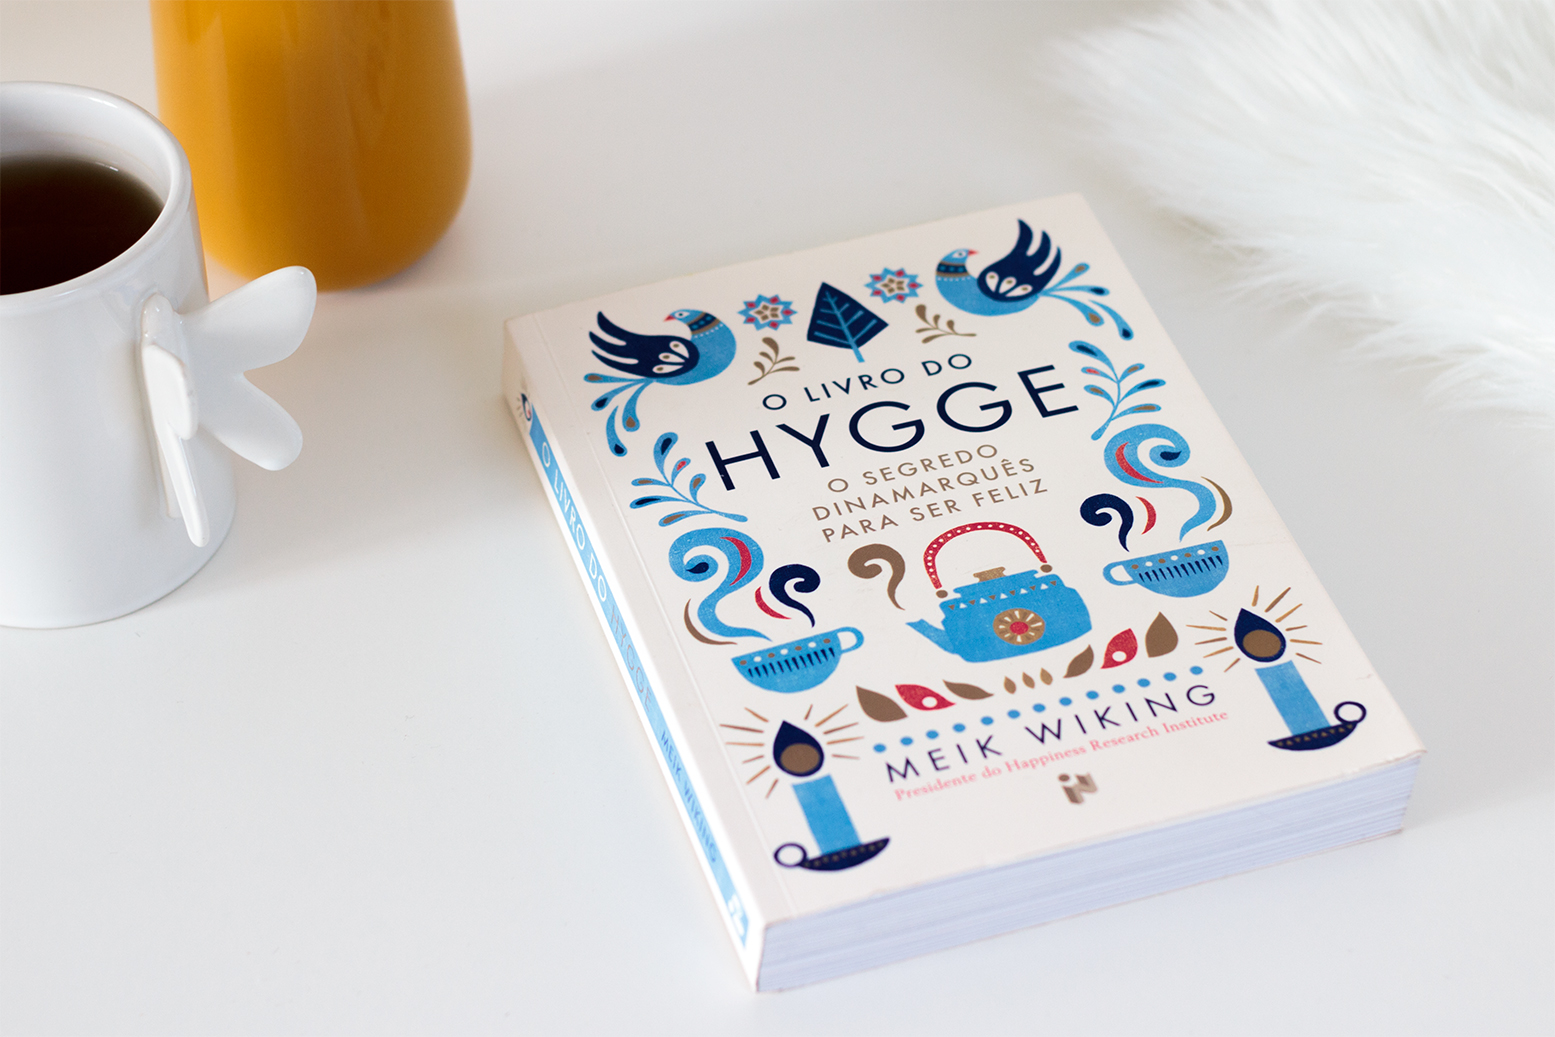 O Livro do Hygge Review